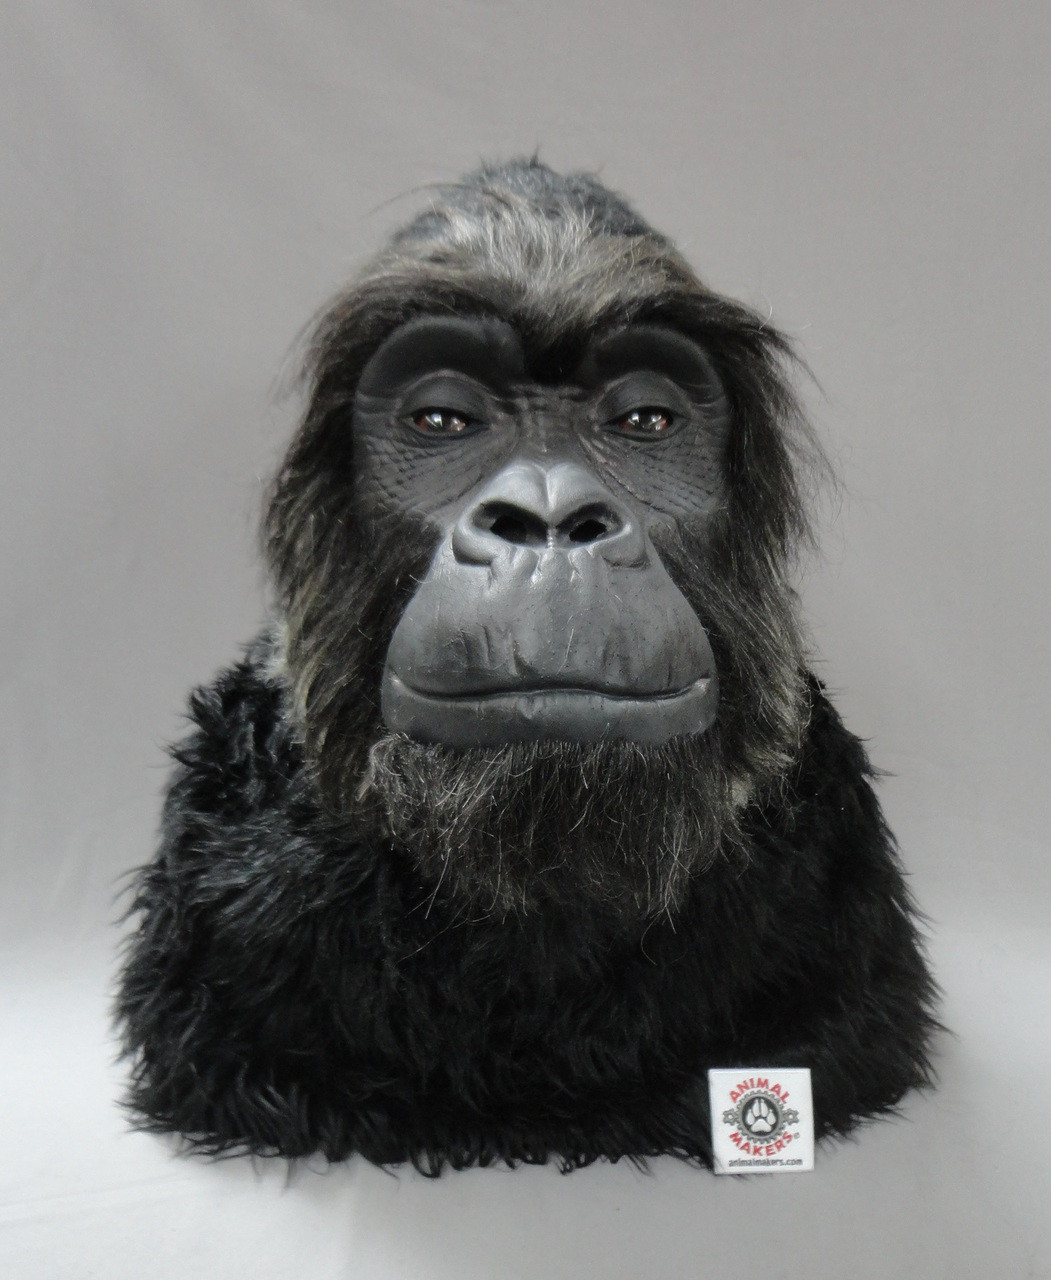 Non animatronic gorilla head with hand punched hair u0026 whiskers all around the face for & Animatronic Professional Gorilla Costume